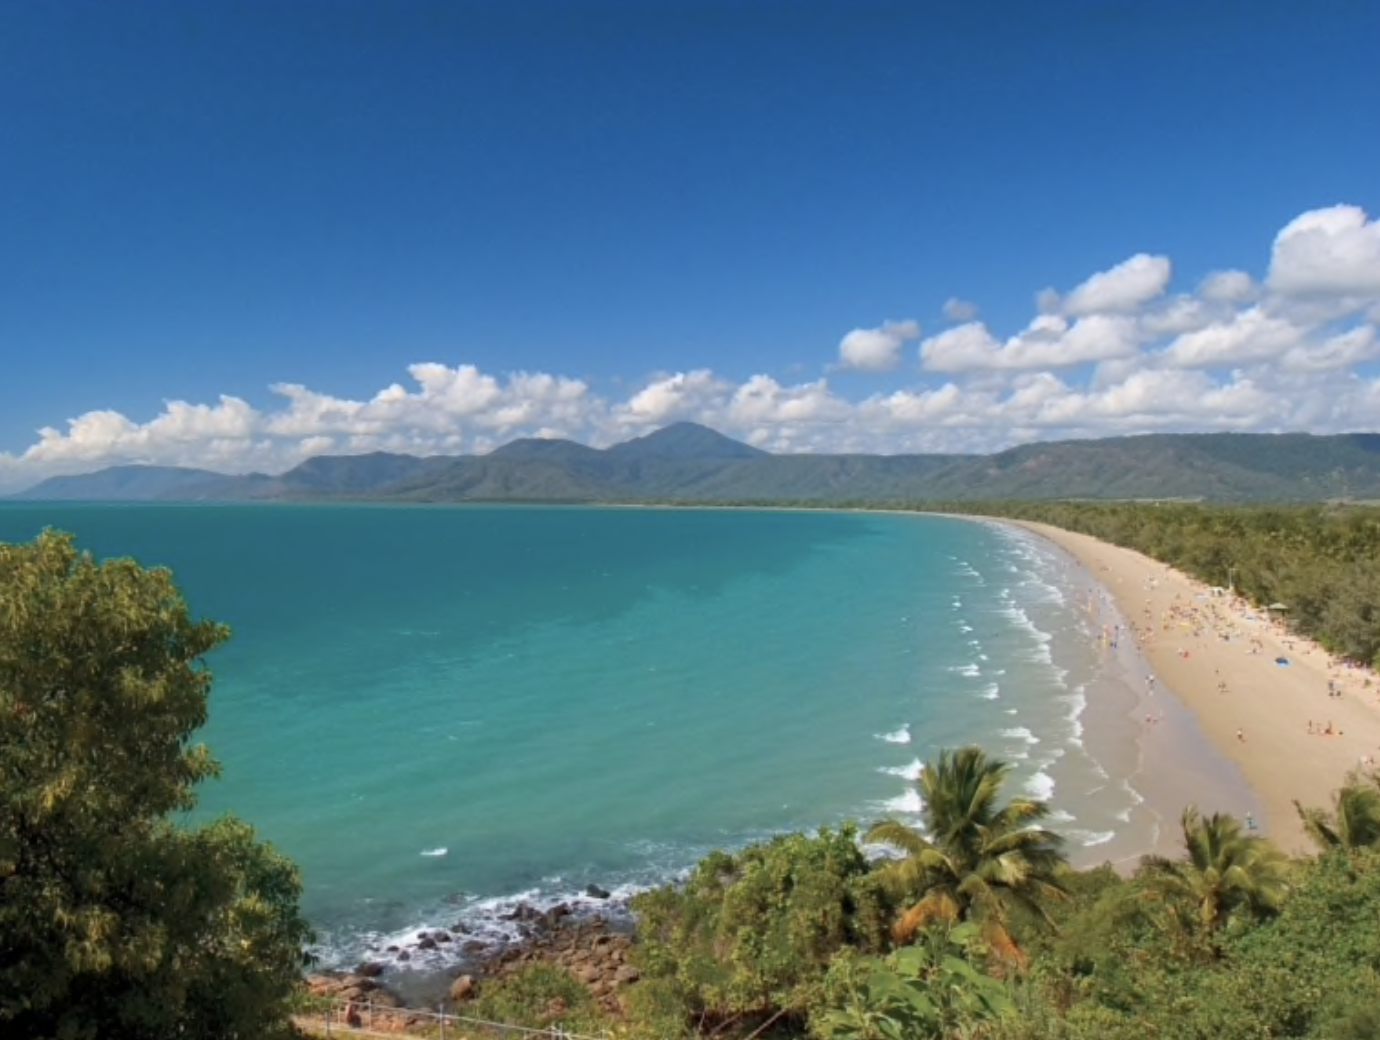 """Four Mile Beach - There's nothing as invigorating as watching the sun come up over an aquamarine ocean. Postcard-perfect and easily accessible, Four Mile Beach curves from the township of Port Douglas. Active types might consider jogging like the locals for whom this beach is a running track. Expect to greet and be greeted; the residents are a friendly lot, even before dawn. A nod of hello or a murmured """"good morning"""" is the perfect way to blend in."""